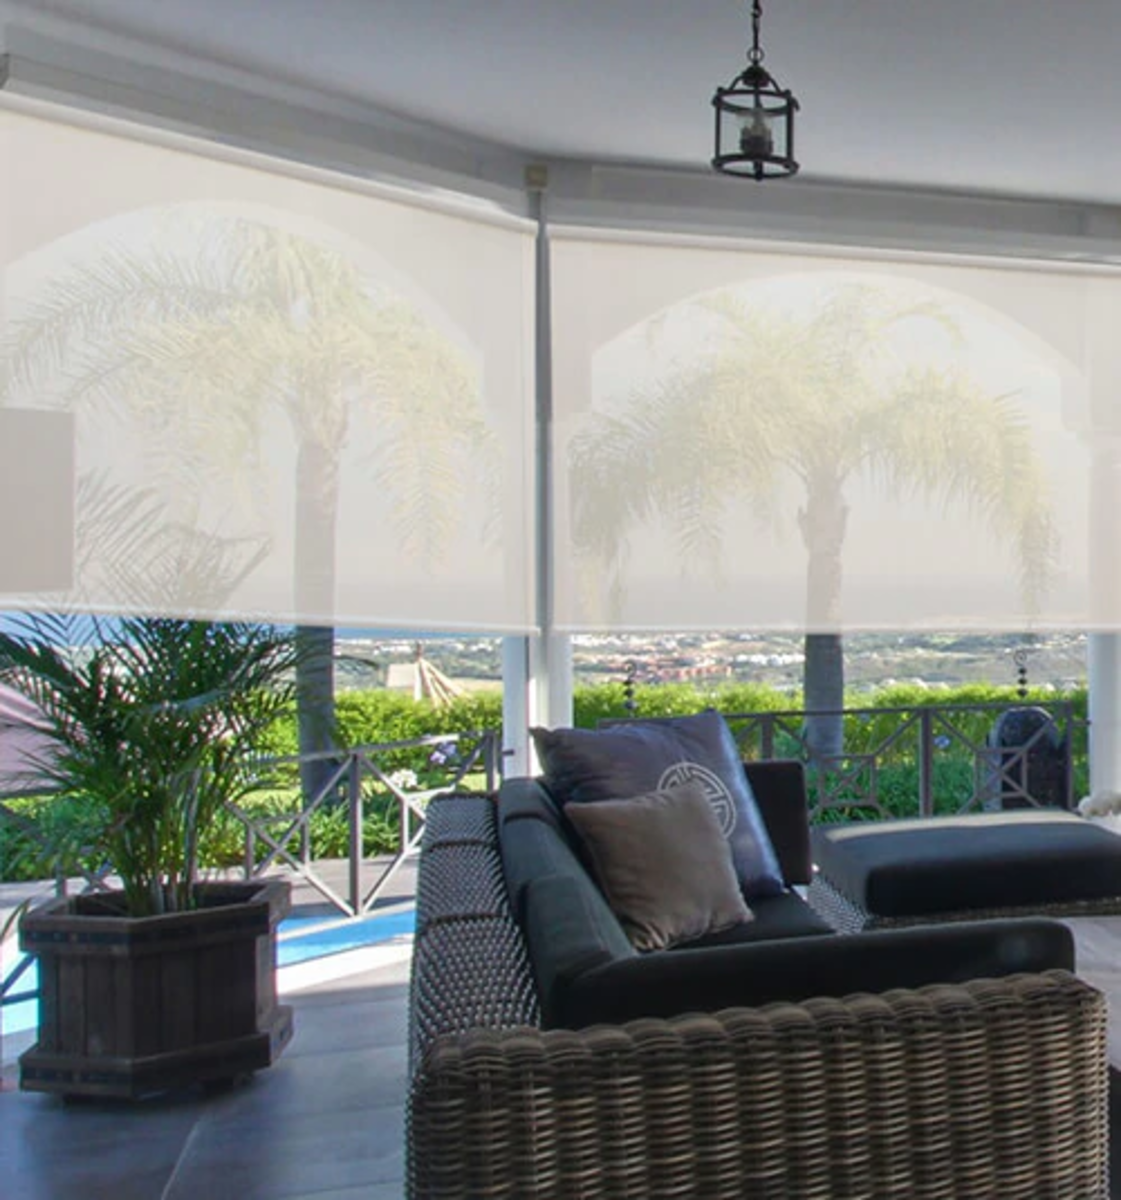 Motorized shades can be used on covered patios, gazebos and porches.